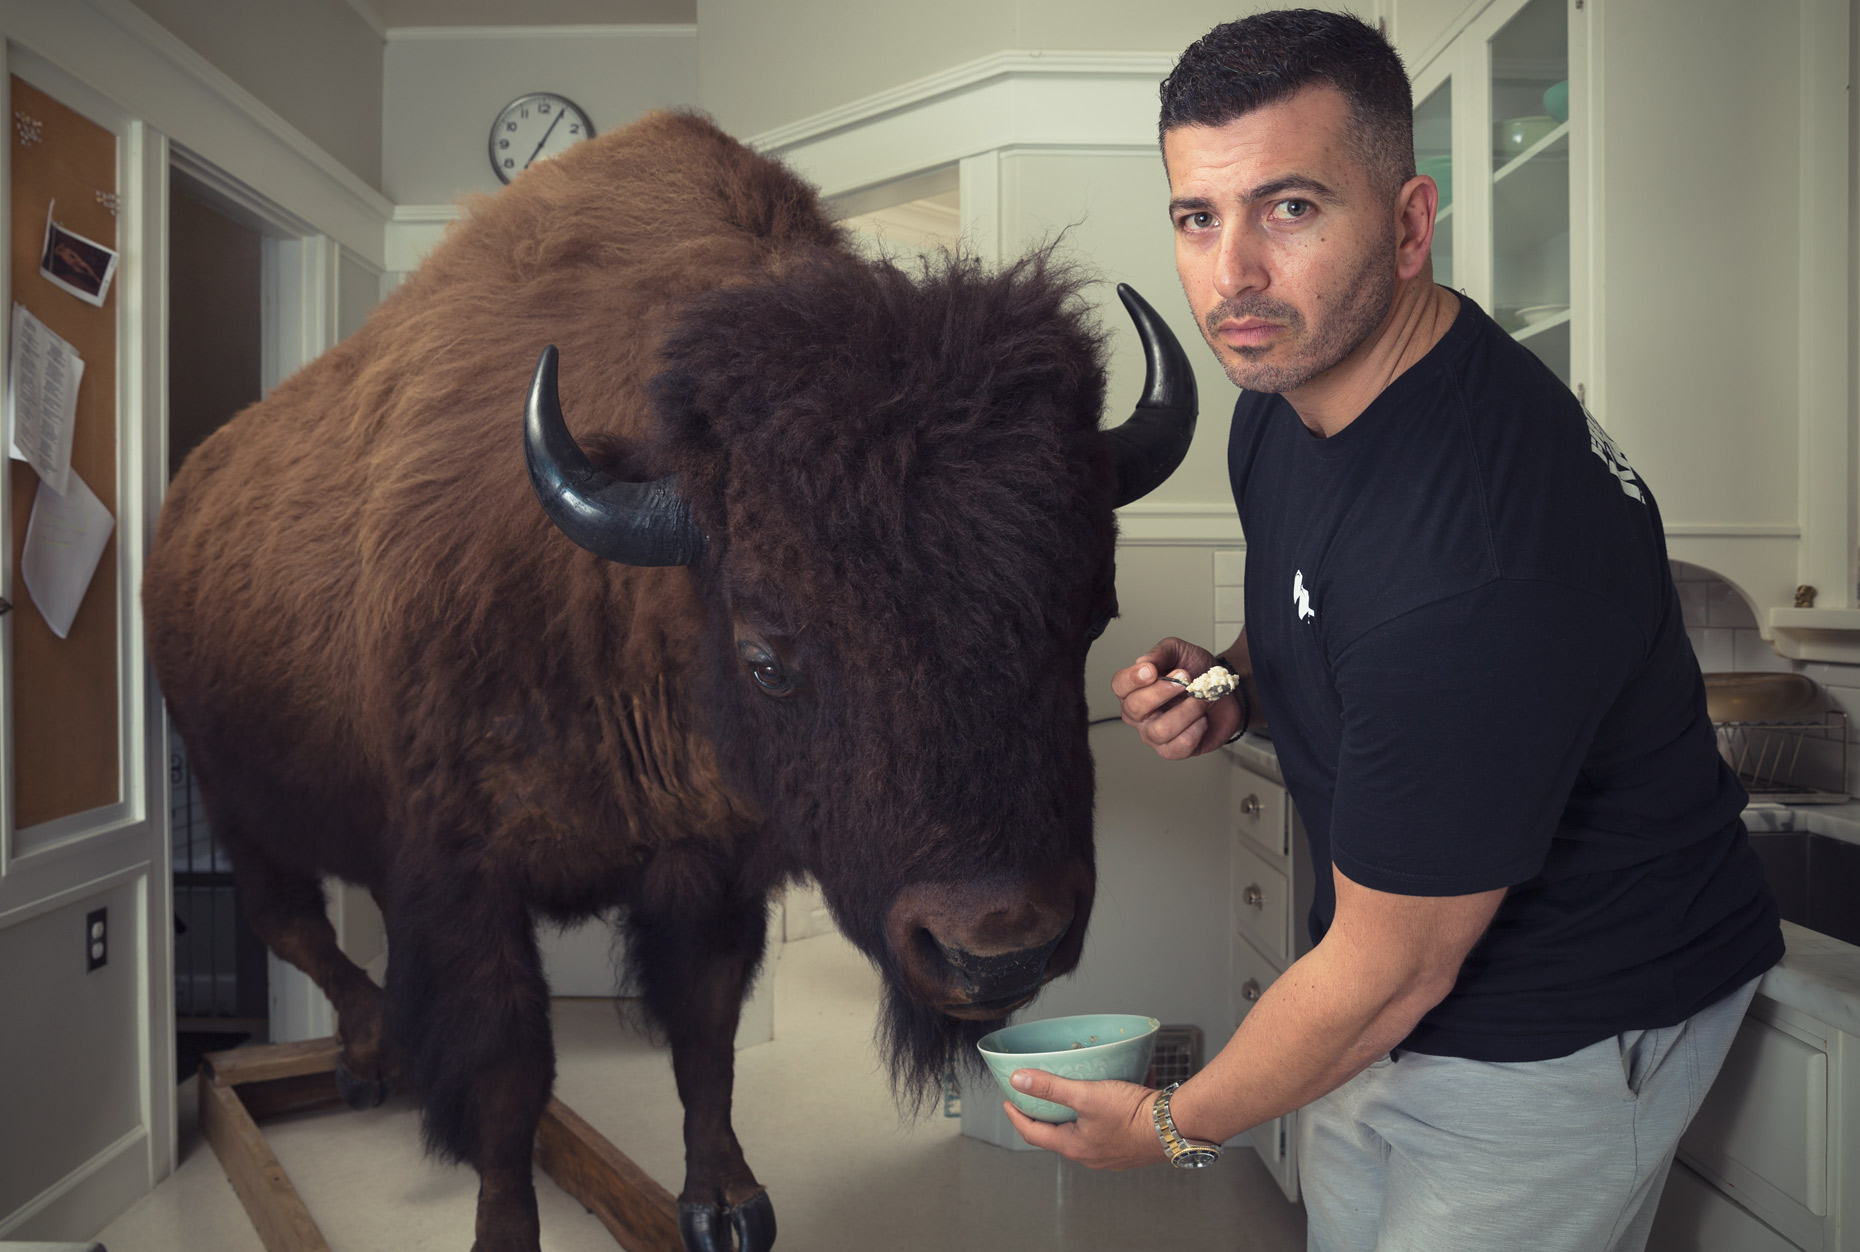 Man feeding a buffalo in a kitchen.